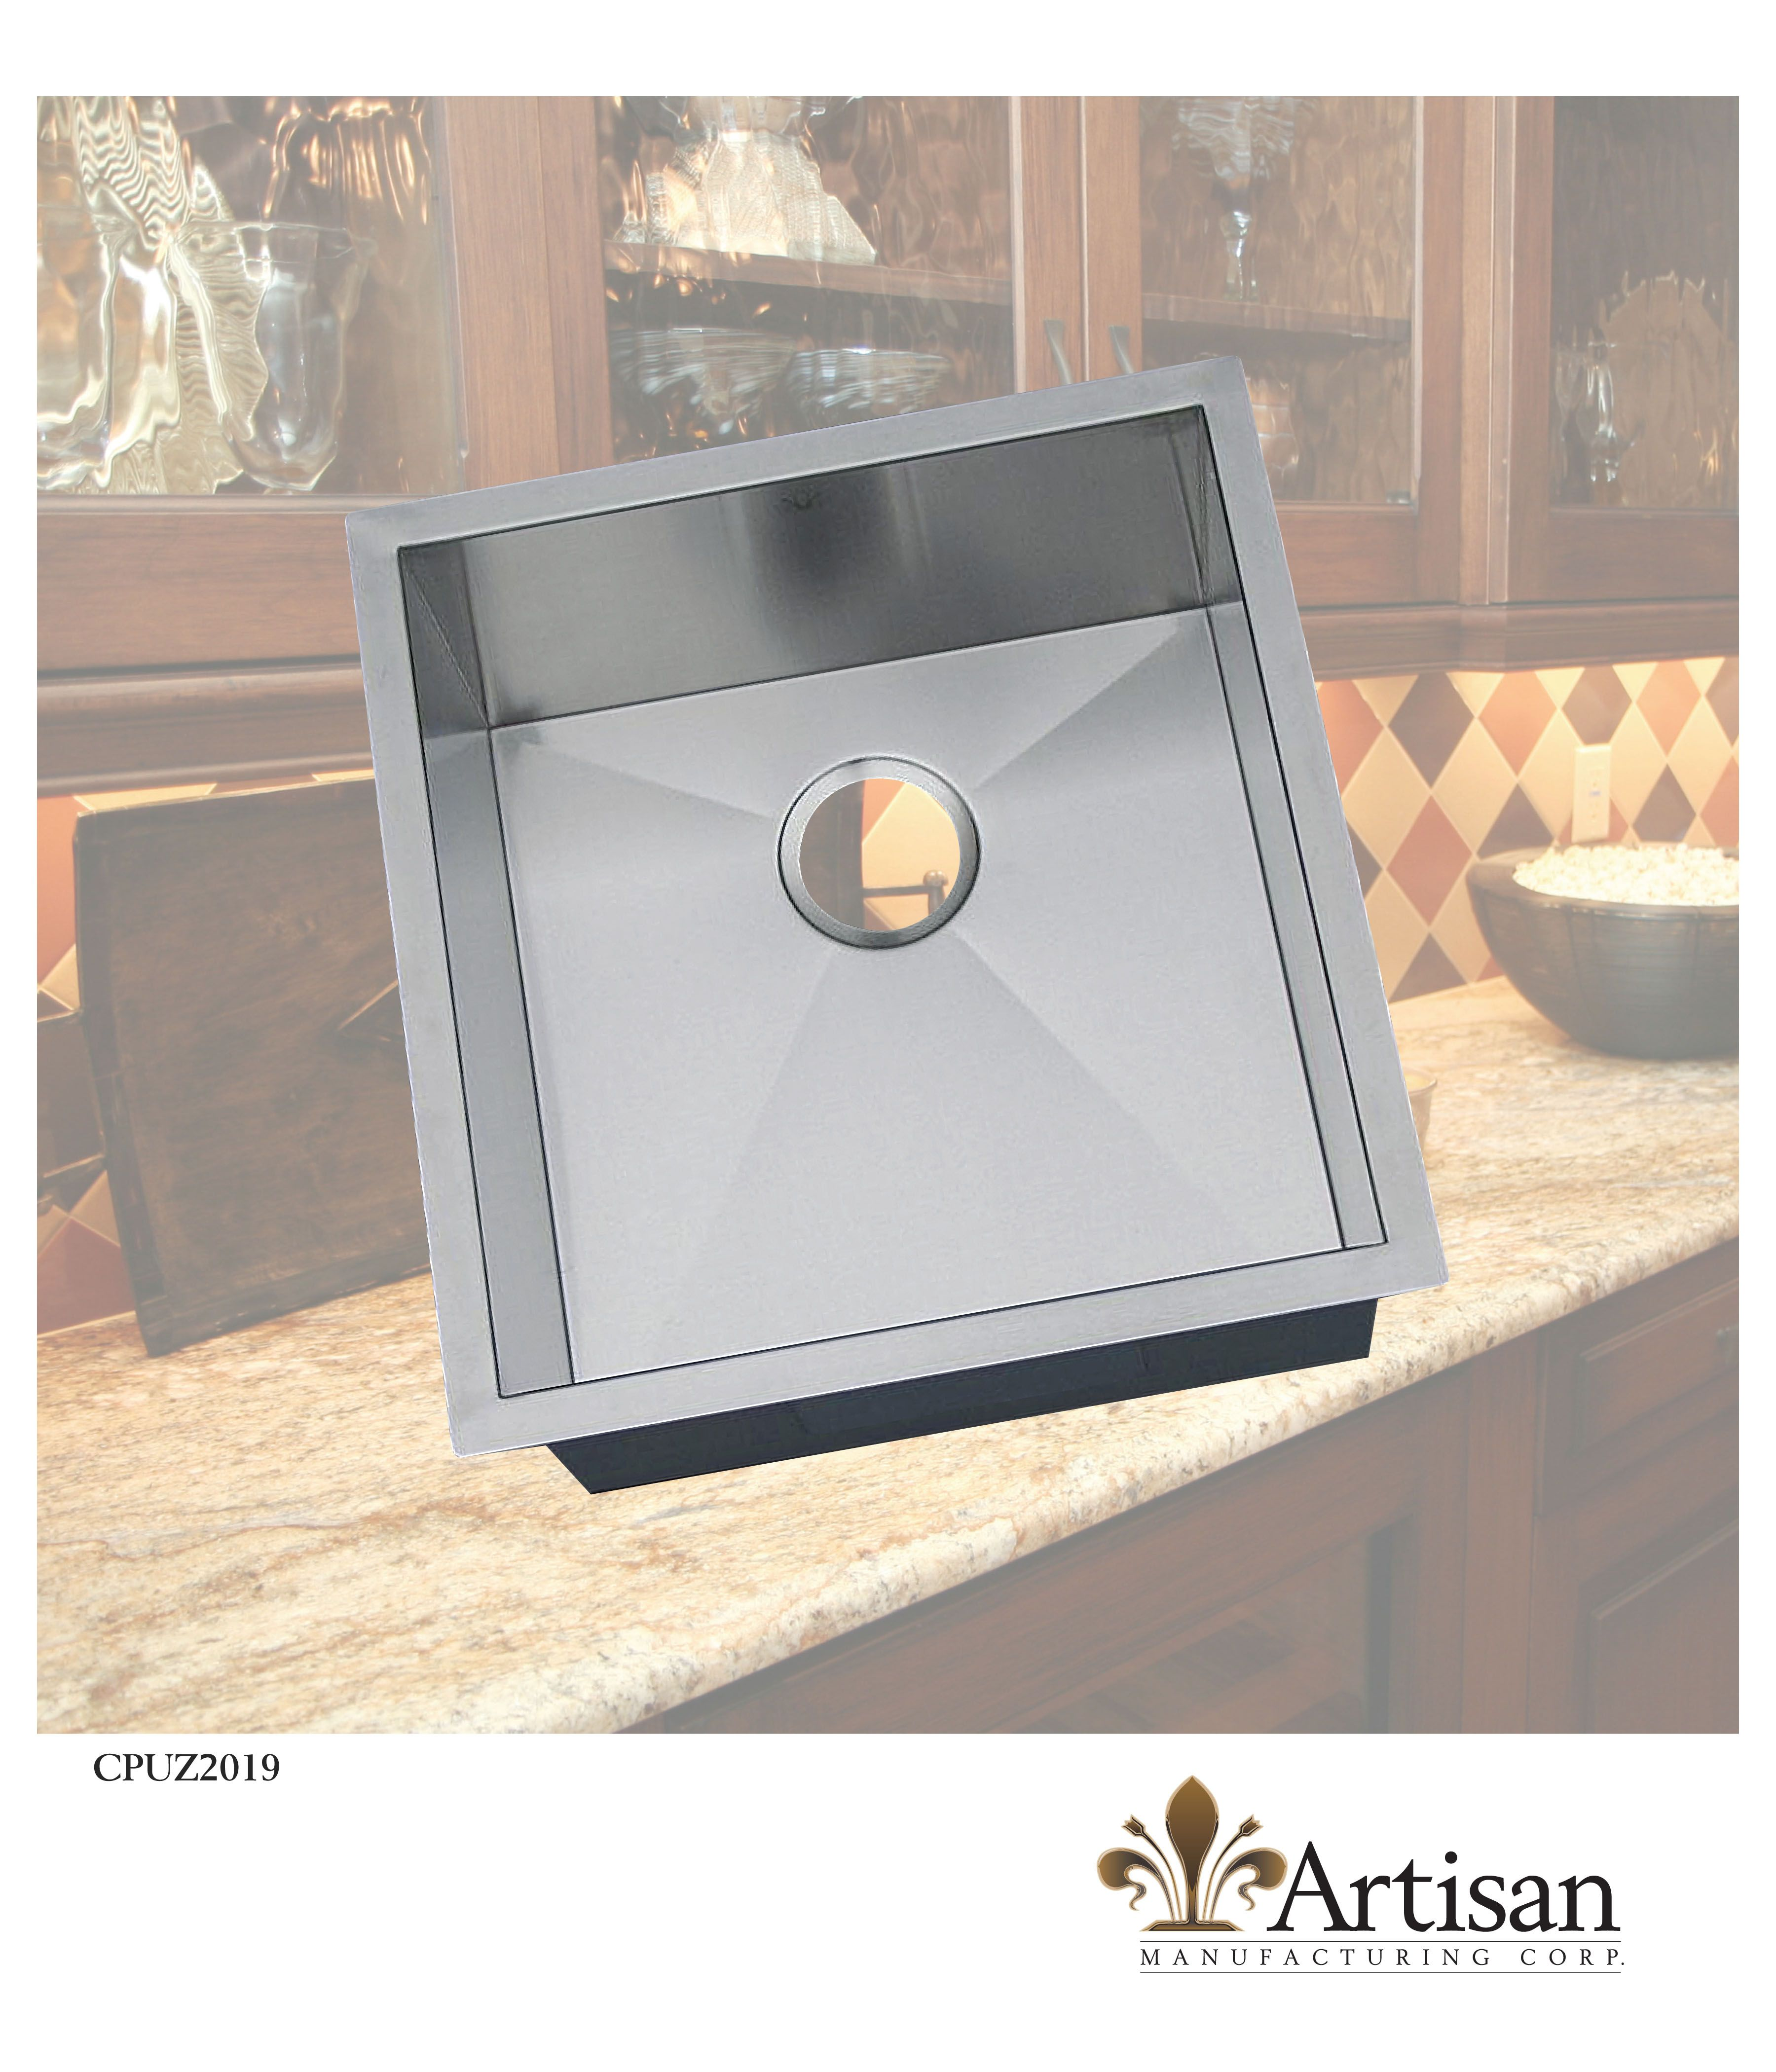 Etonnant Chef Series Artisan Stainless Steel Sinks. Chef Series Is The Strongest On  The Market With